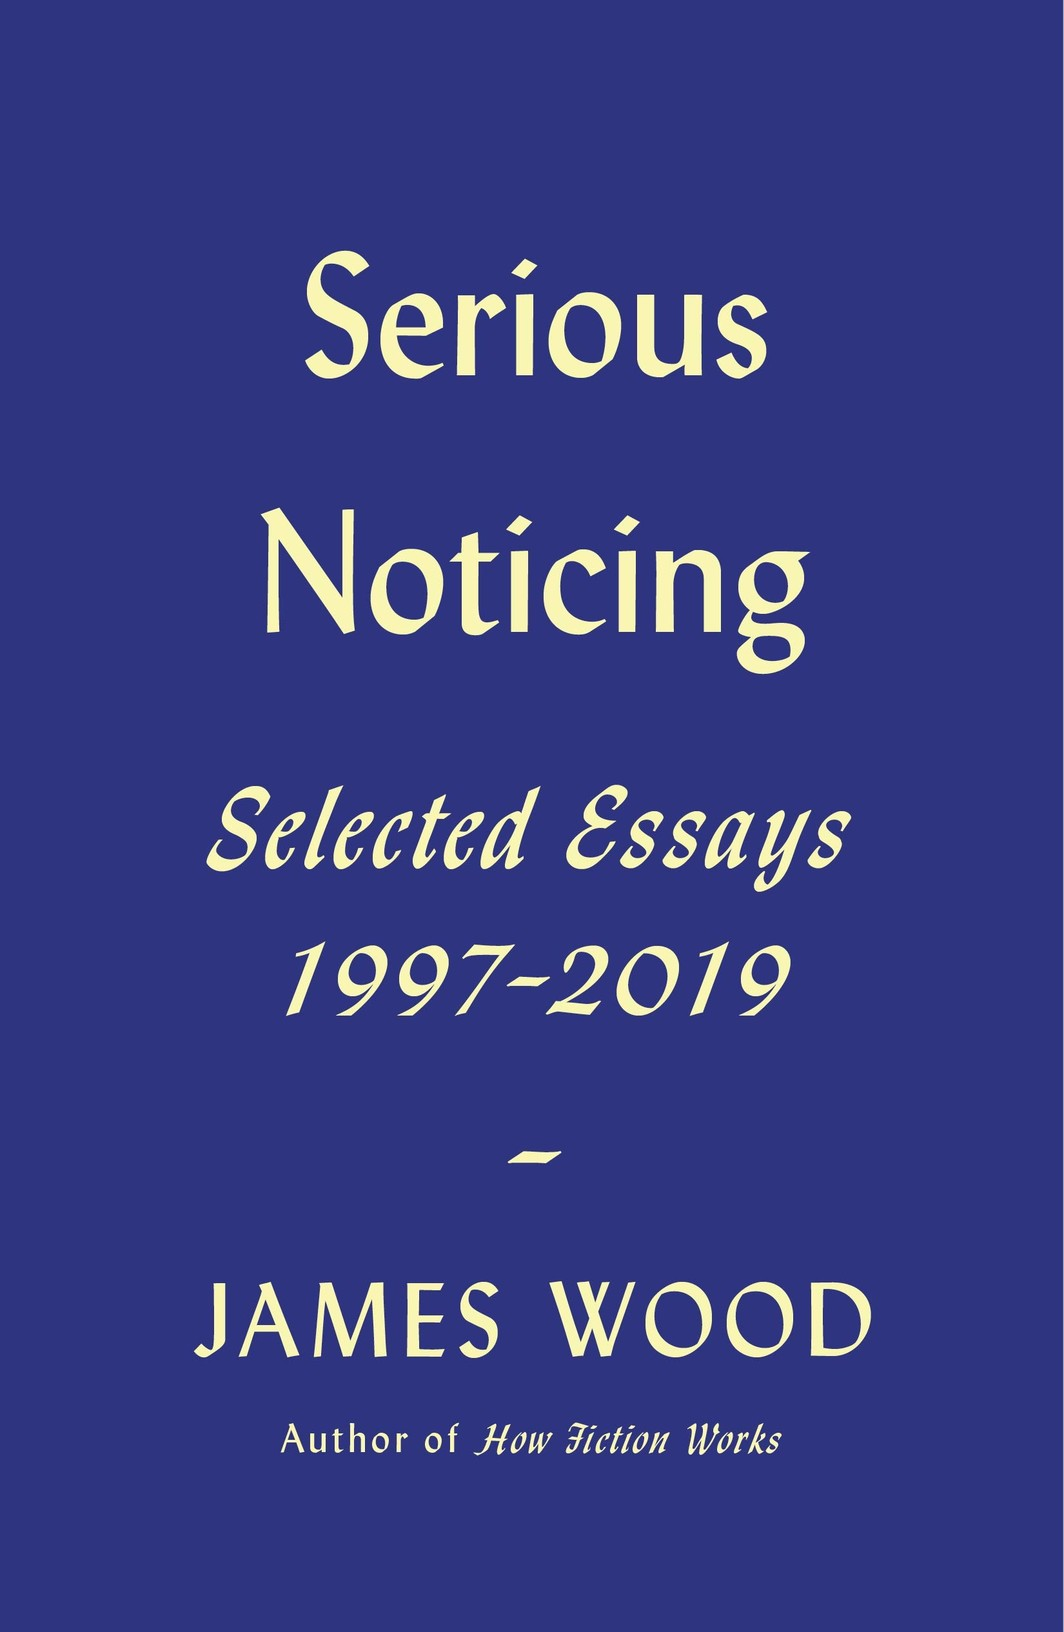 The cover of Serious Noticing: Selected Essays, 1997-2019